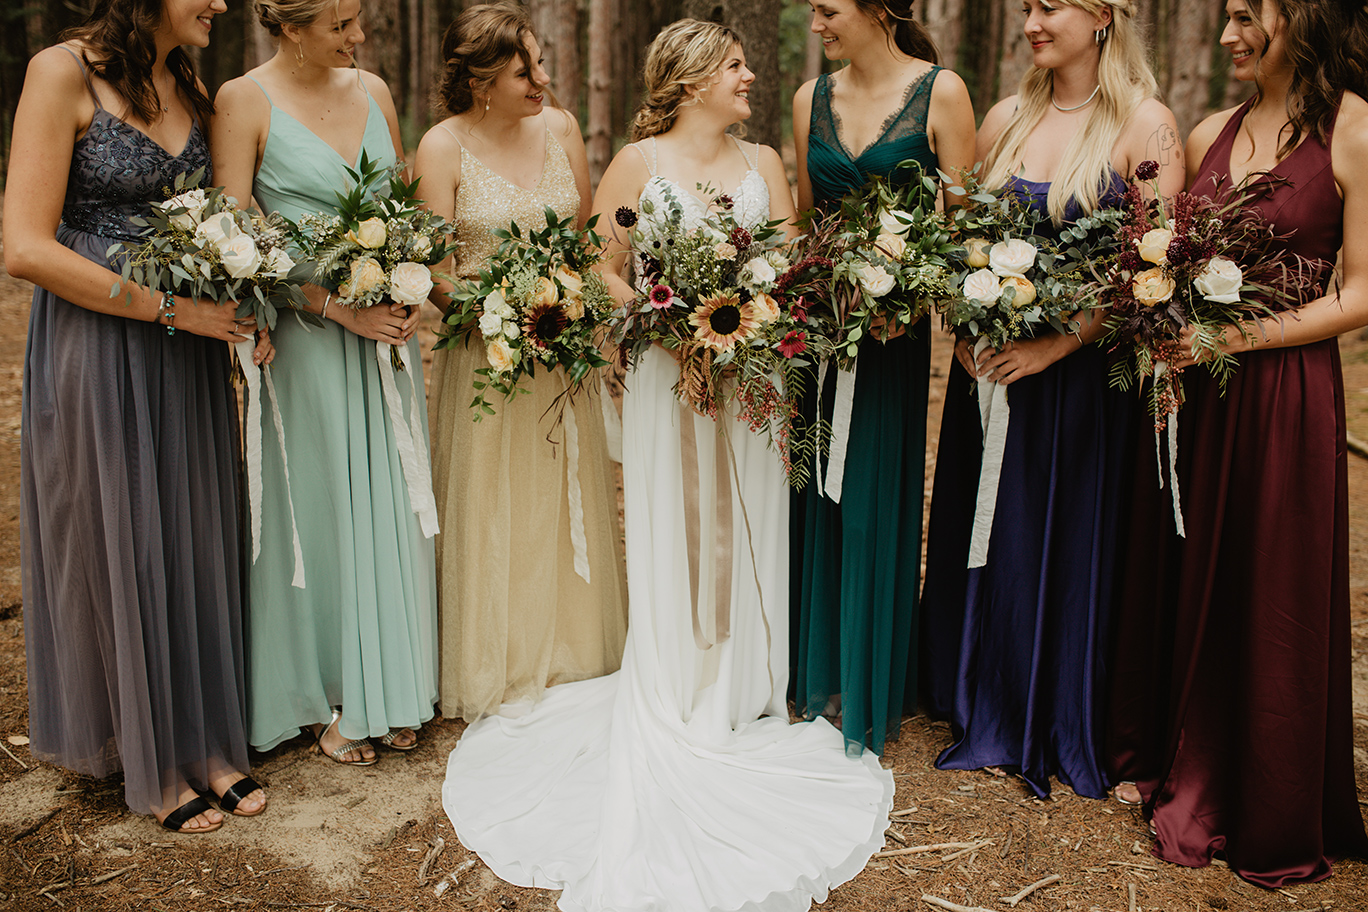 bridesmaids-wedding-woods